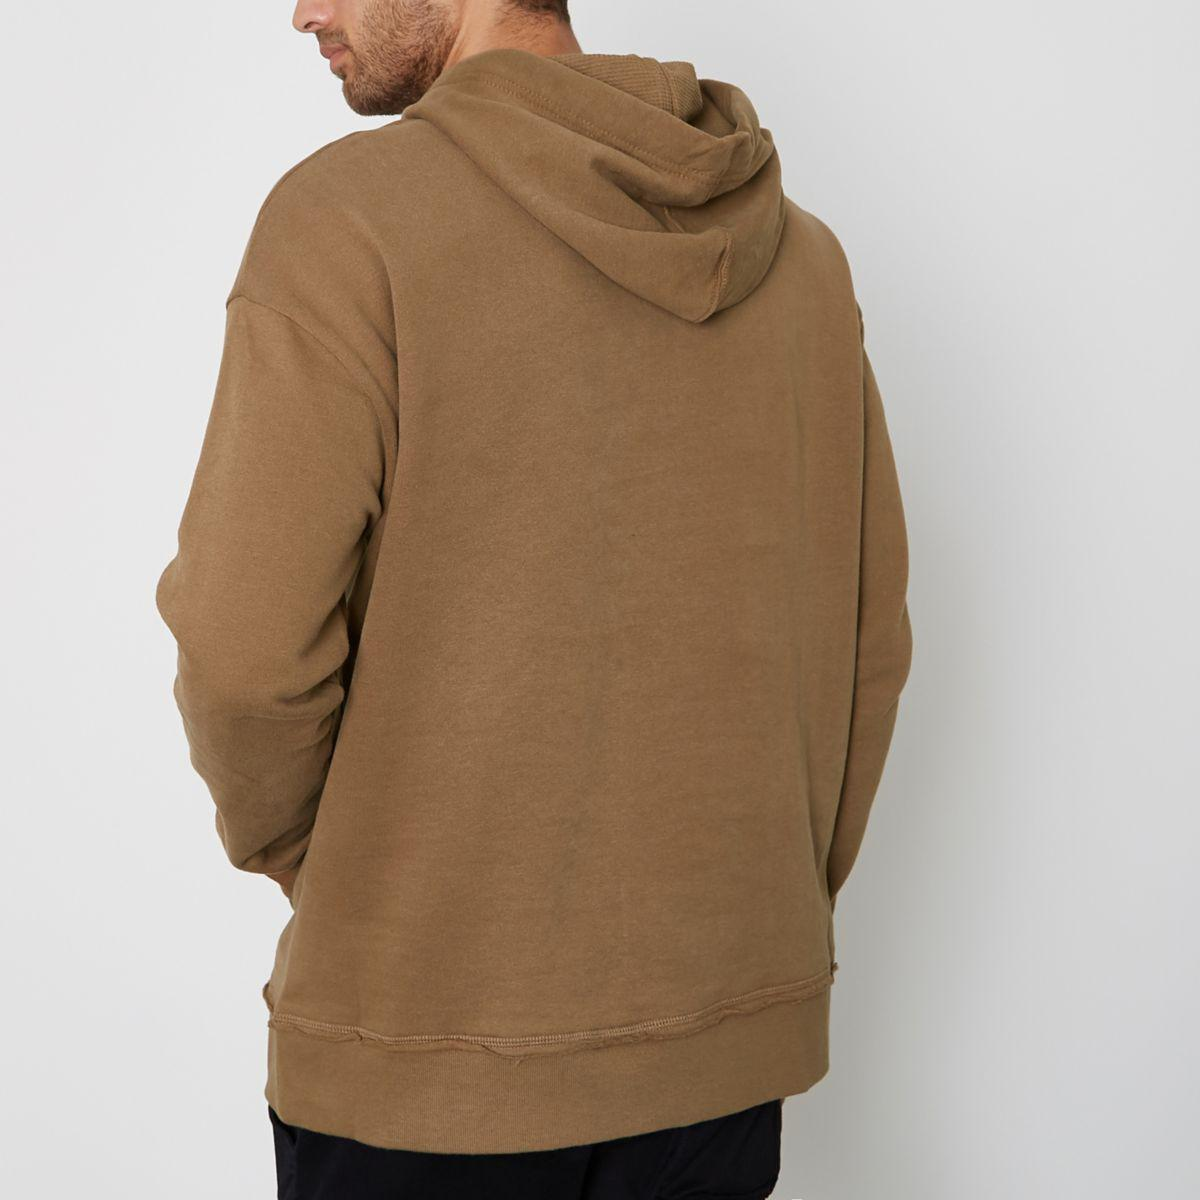 Lyst River Island Tan Ripped Oversized Hoodie Tan Ripped